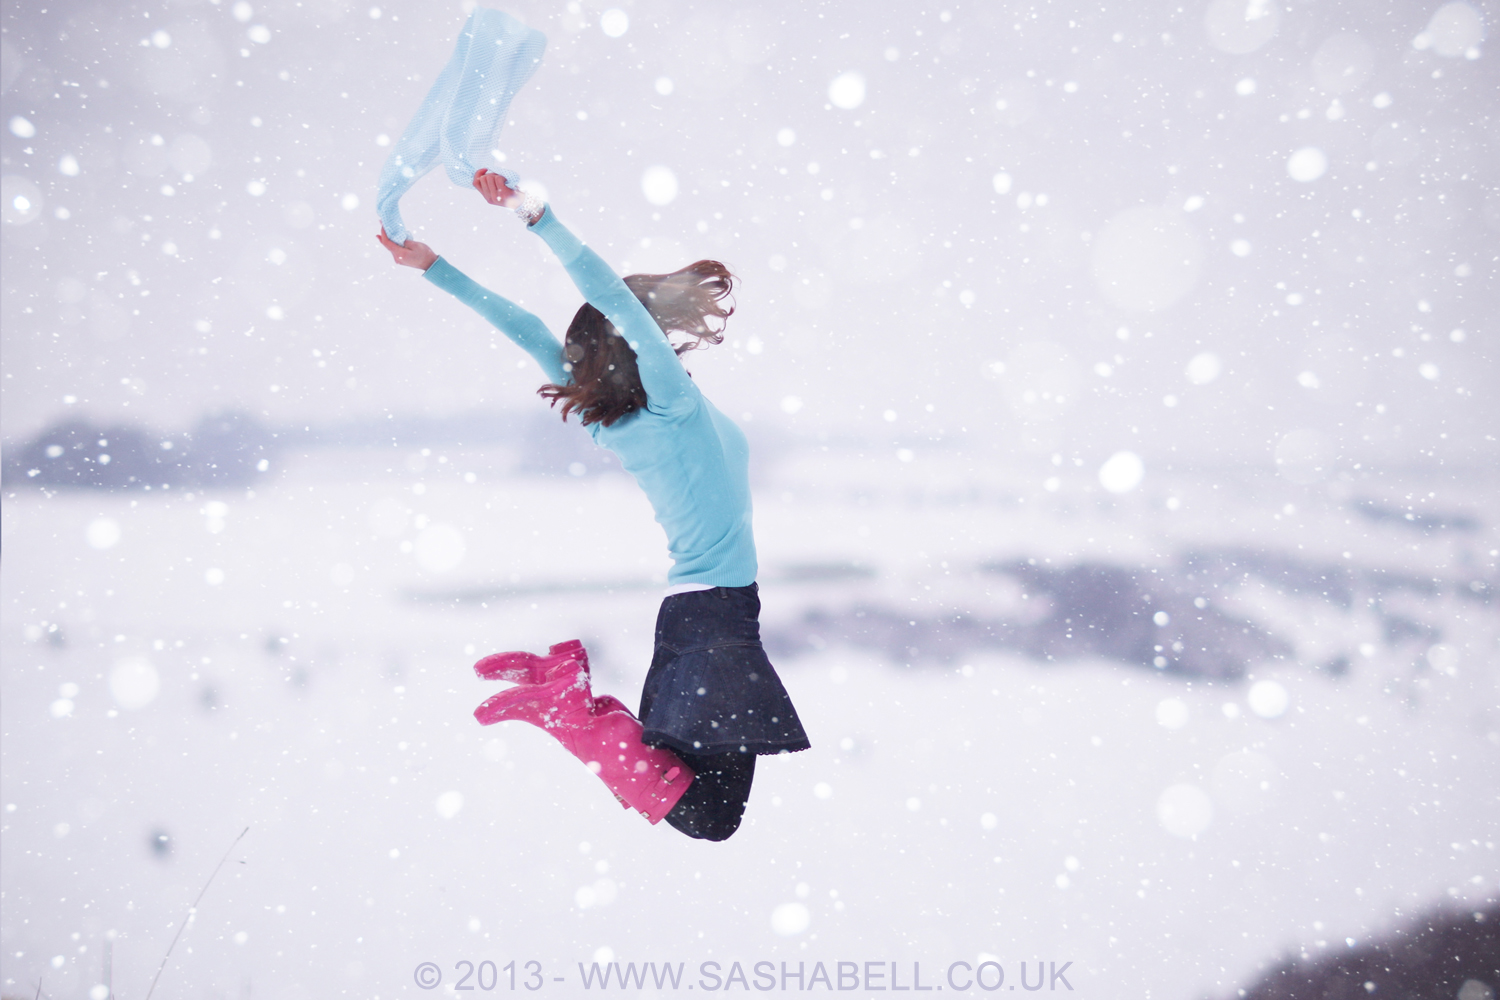 Jumping in the Snow – Day 118/365